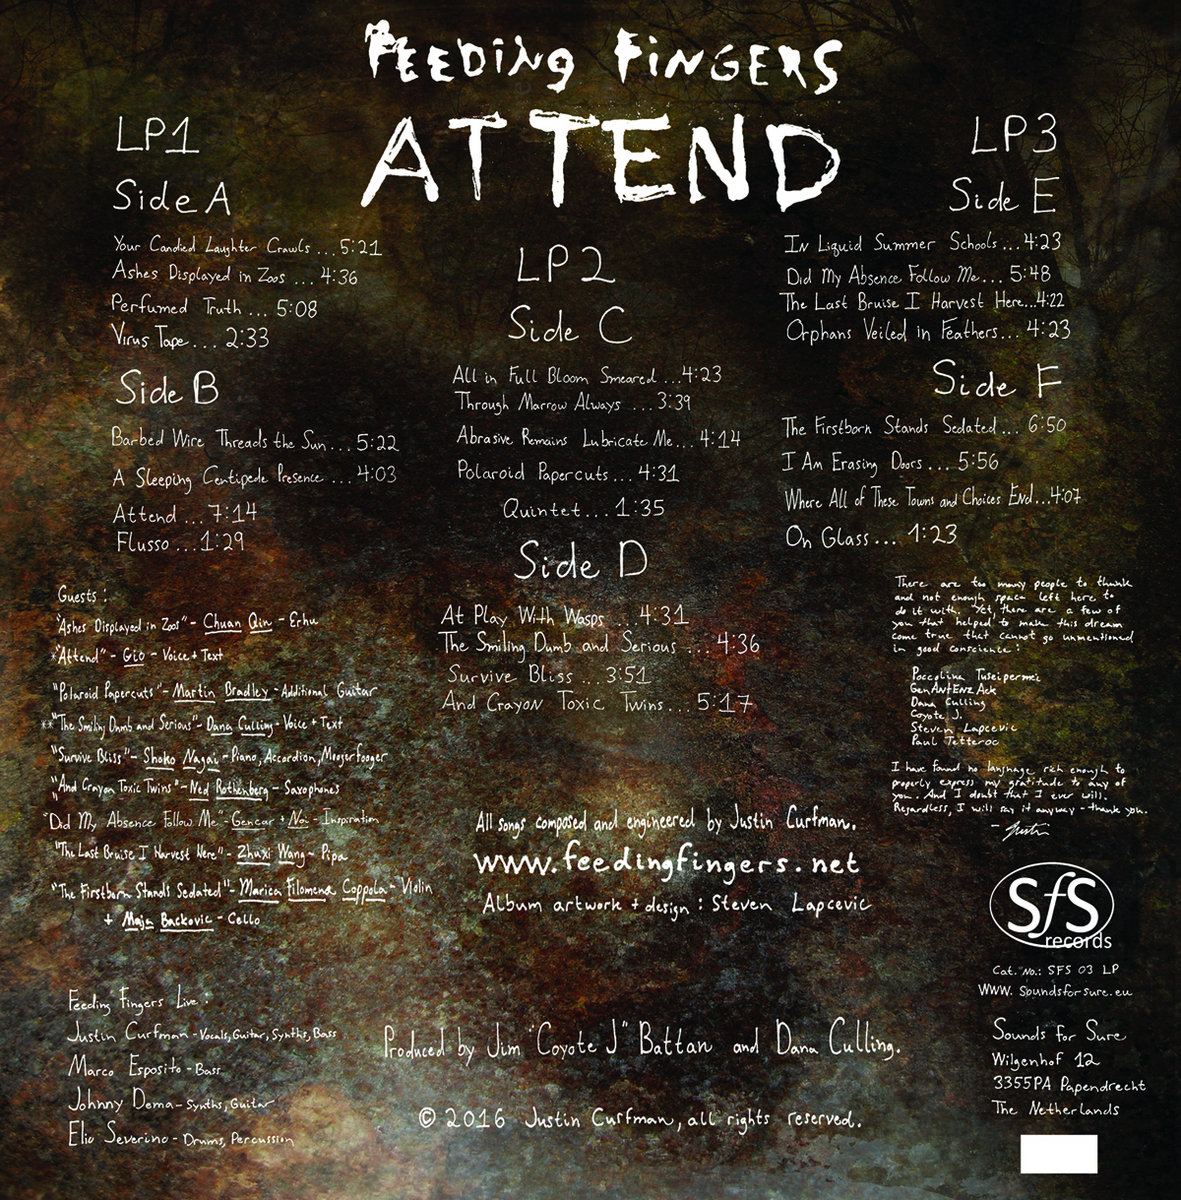 Attend feeding fingers we strongly encourage you to buy the lp directly from sounds for sure records save money and time stopboris Image collections